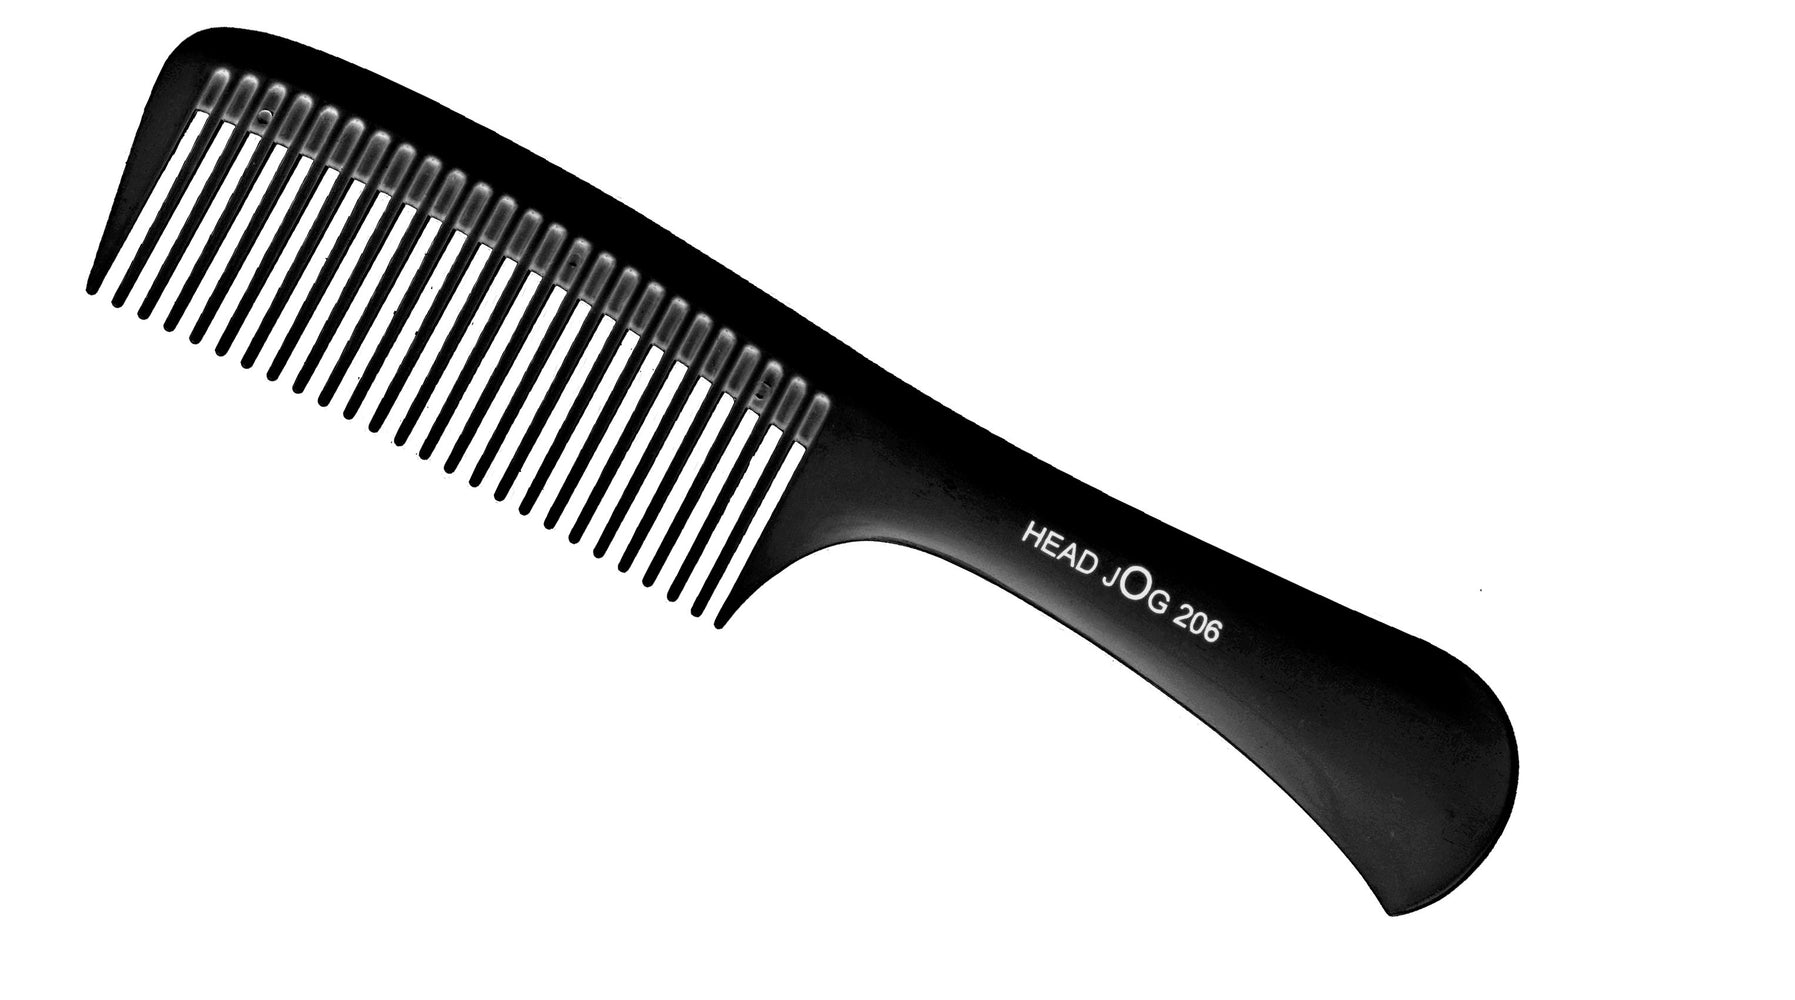 Head Jog 206 - Detangle Comb Black